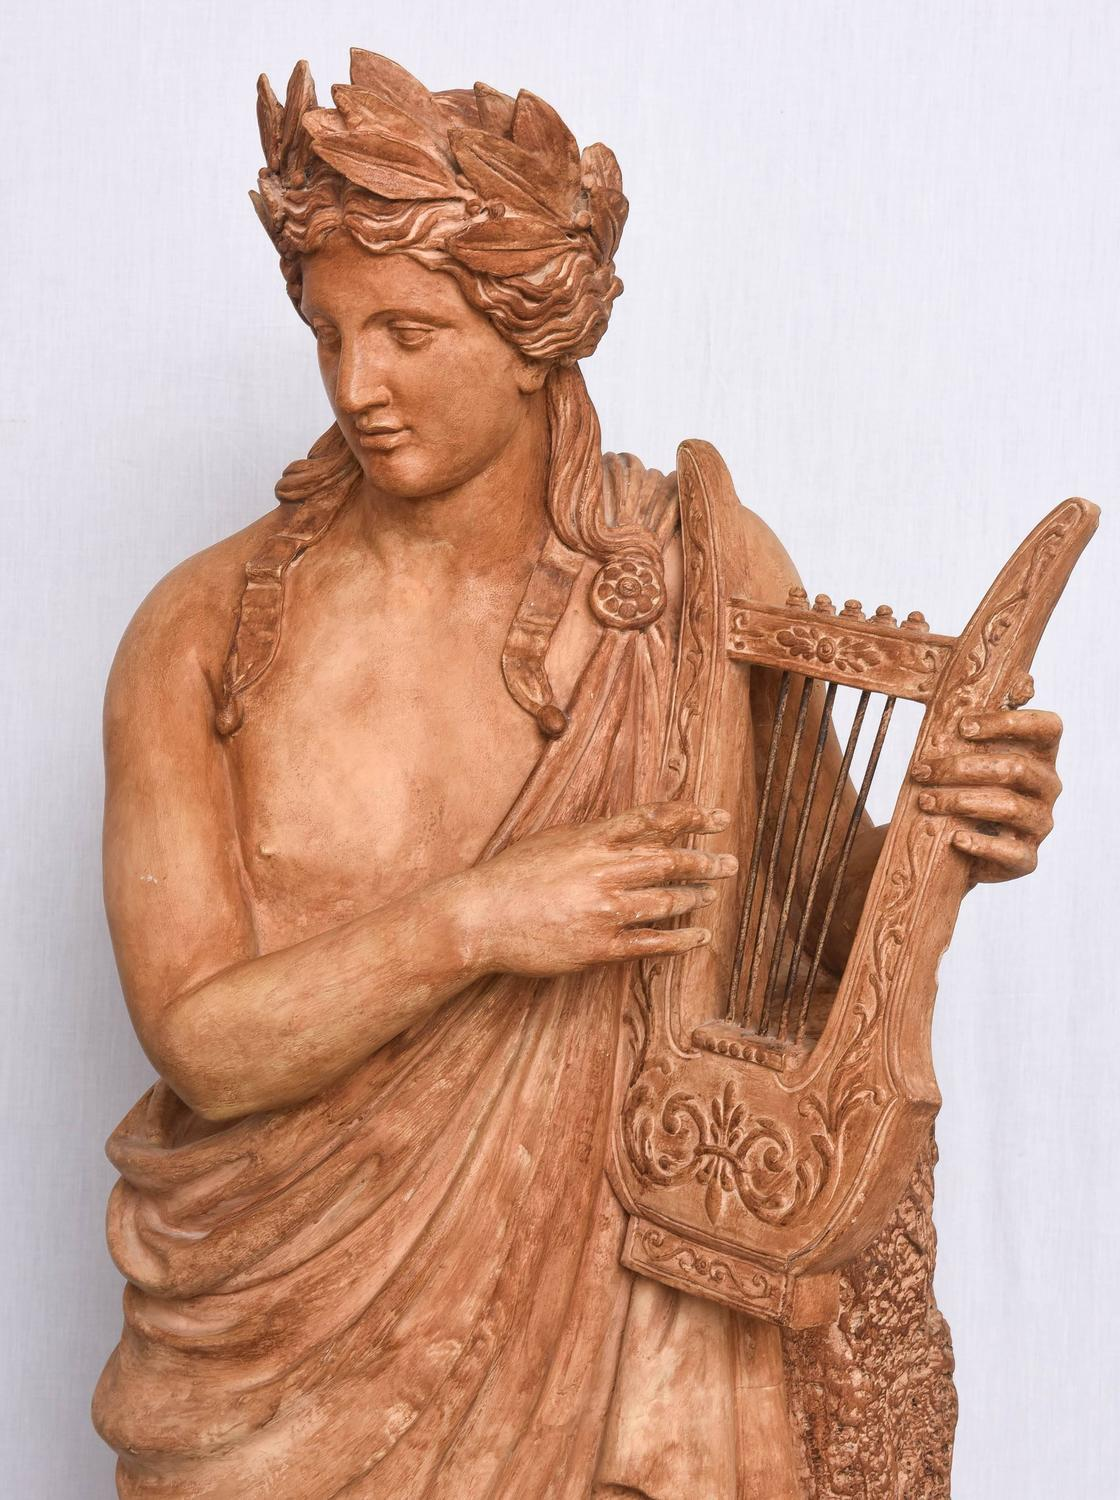 Terra Cotta Garden Statue of Greek God Apollo Playing a ...